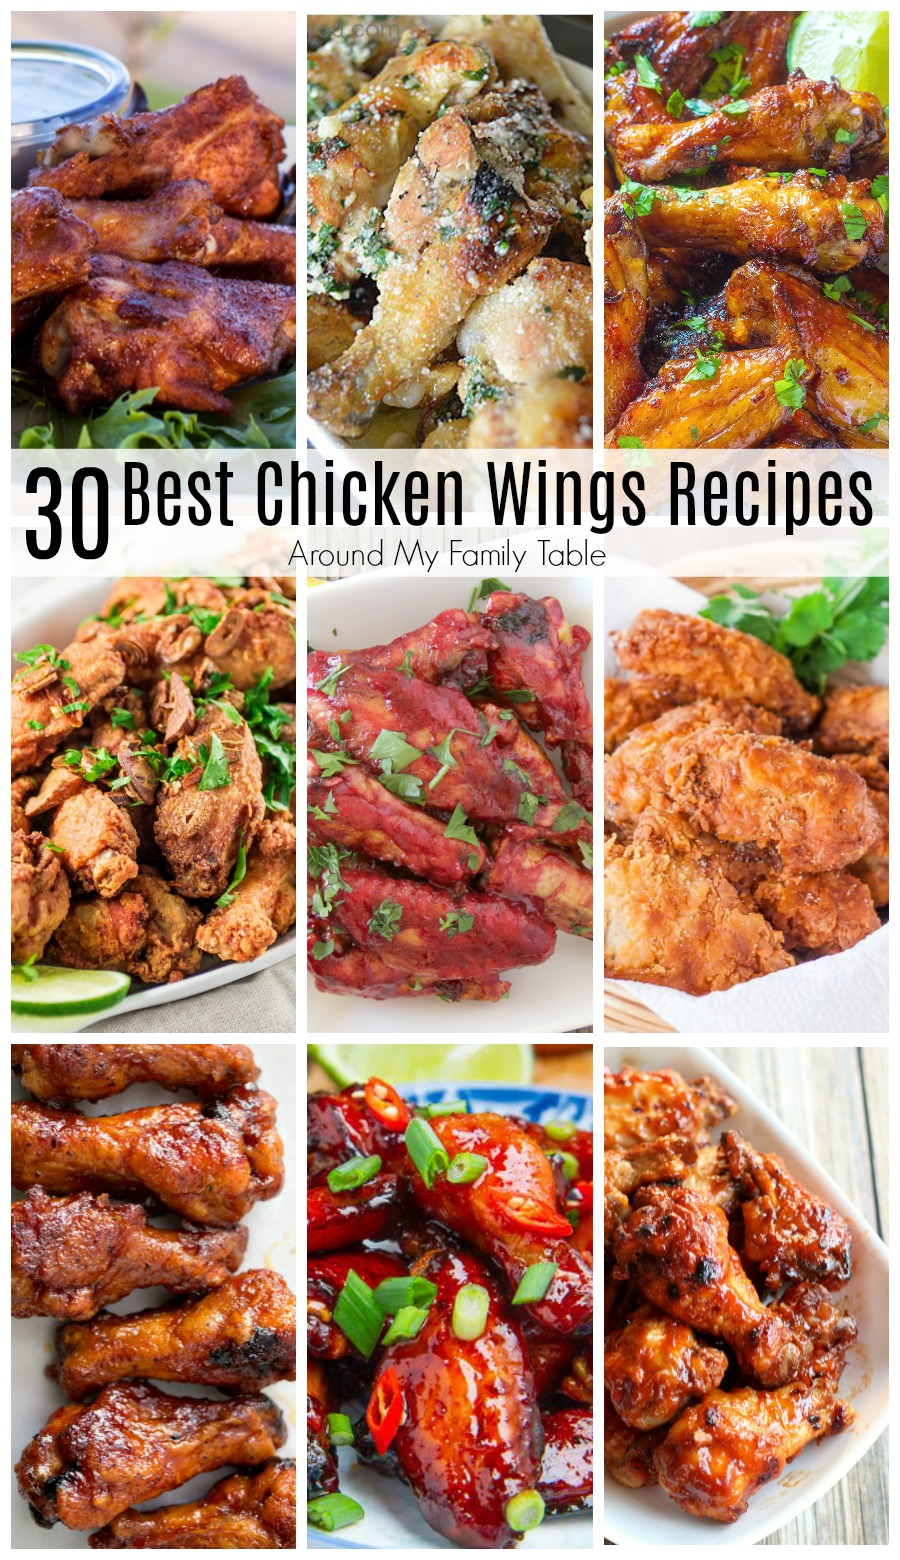 You can have delicious, crispy chicken wings at home!  I'm sharing my favorite 30 Best Chicken Wing Recipes so that you can cook at home and save some money too.